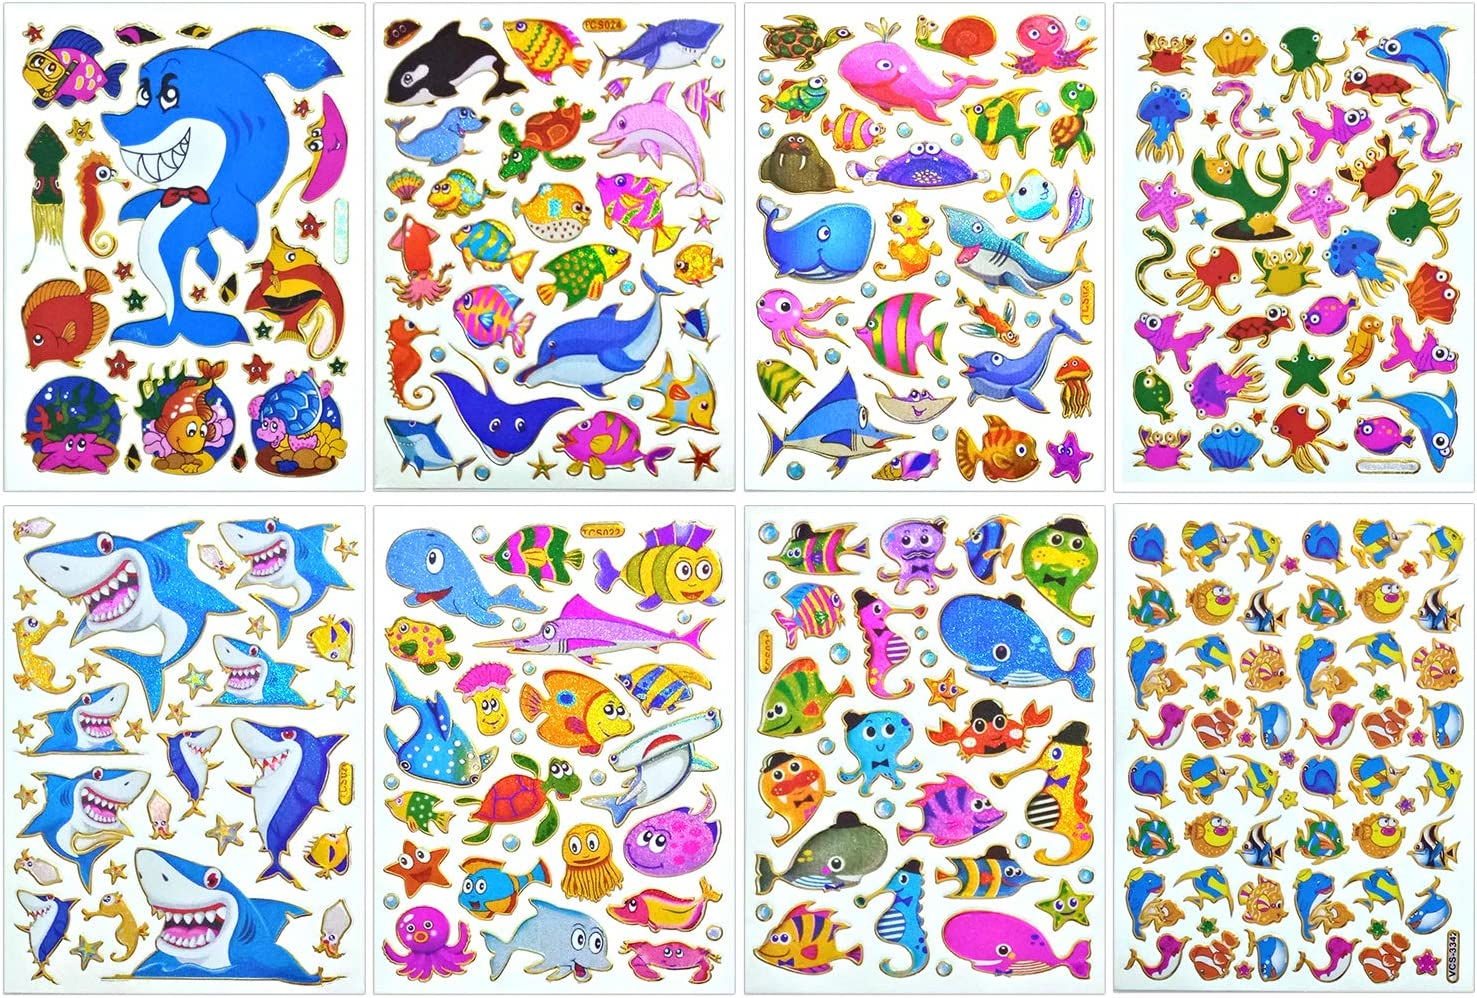 Seaworld Sticker Self-Adhesive Glitter Metallic Reflective Foil with Shark Whale Stingray Goldfish Clownfish Angelfish Puffers Fish Octopus Squid Jellyfish Crab Turtle Seahorse Snail (ST08-SEAWORLD)